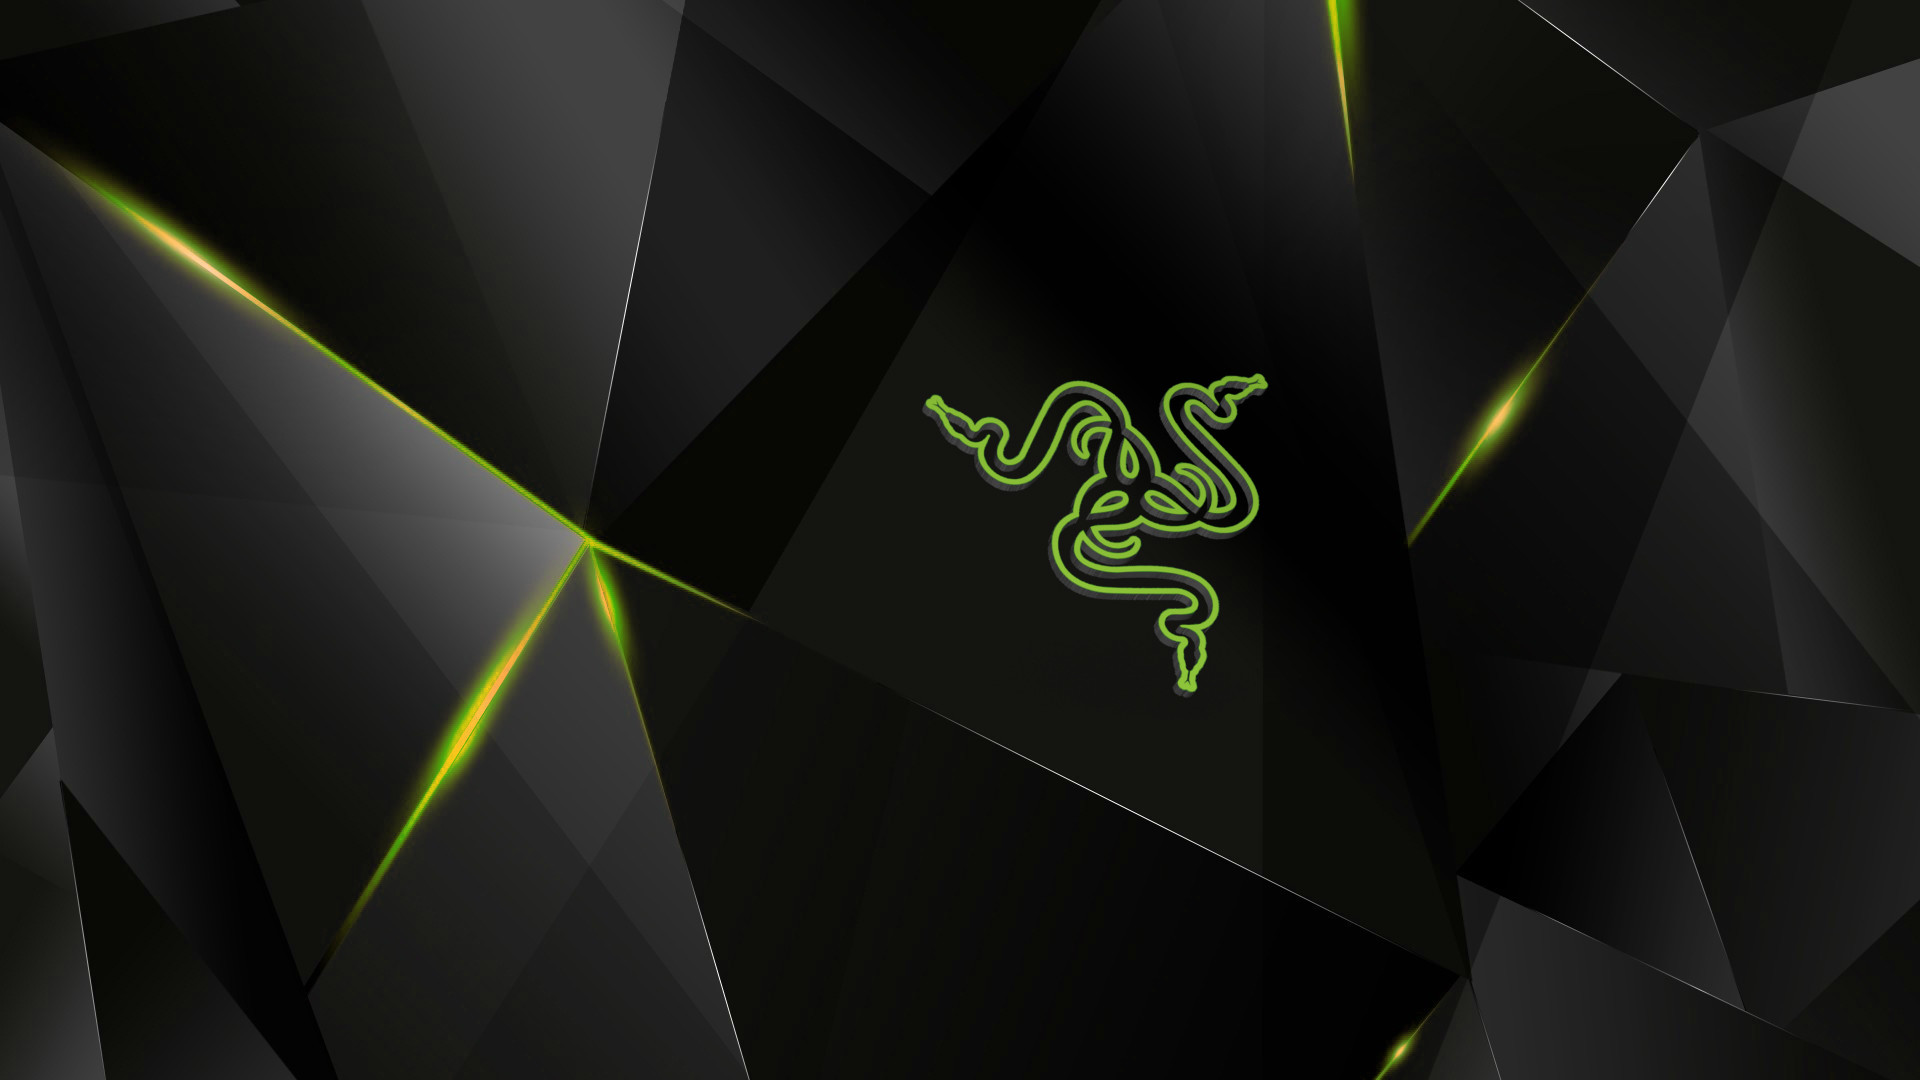 razer screensaver